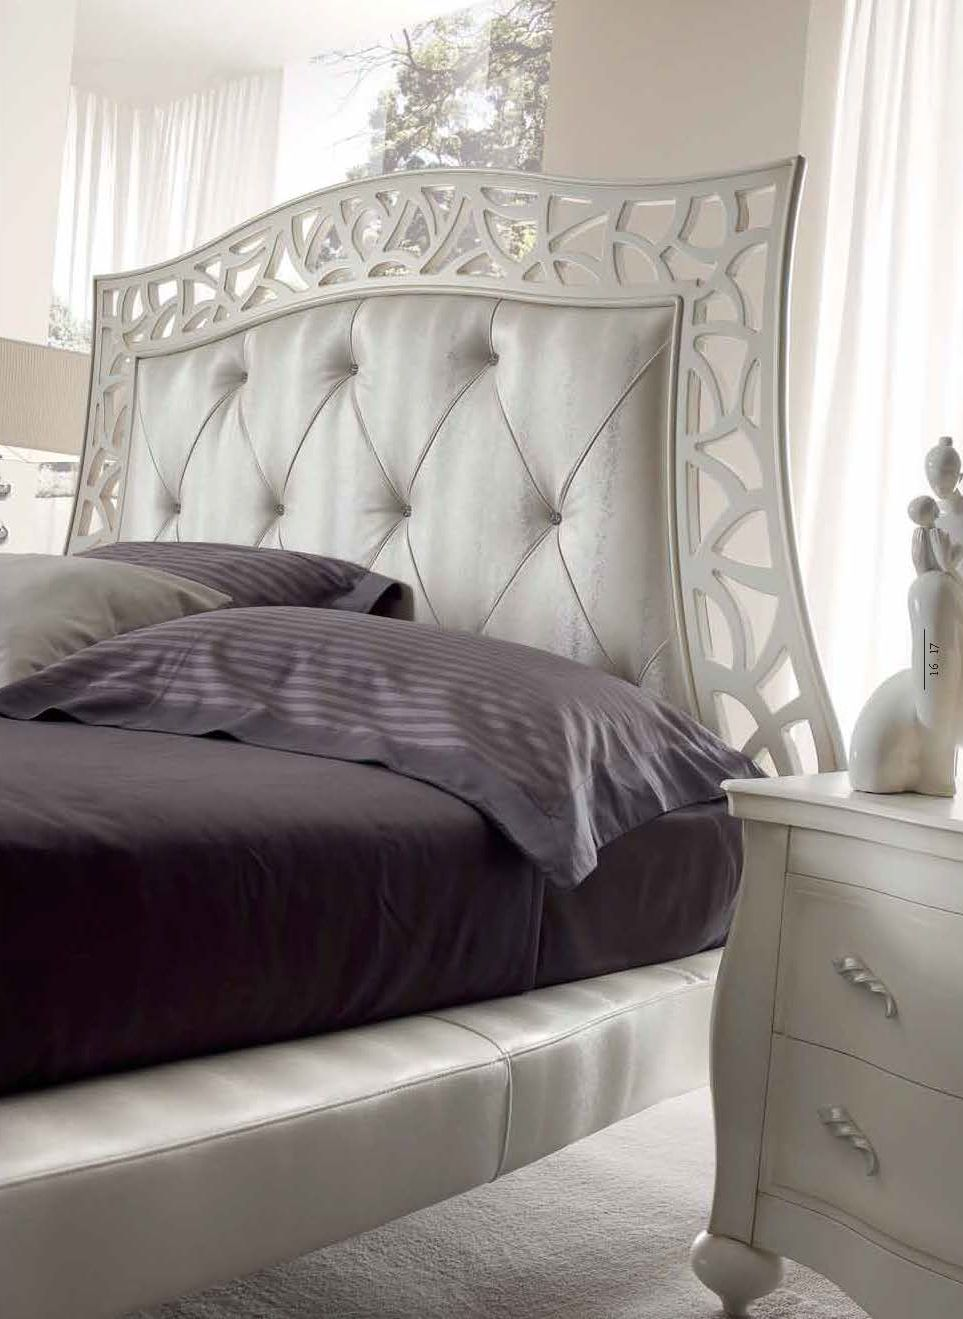 klassische m bel schlafzimmer ferretti ferretti. Black Bedroom Furniture Sets. Home Design Ideas